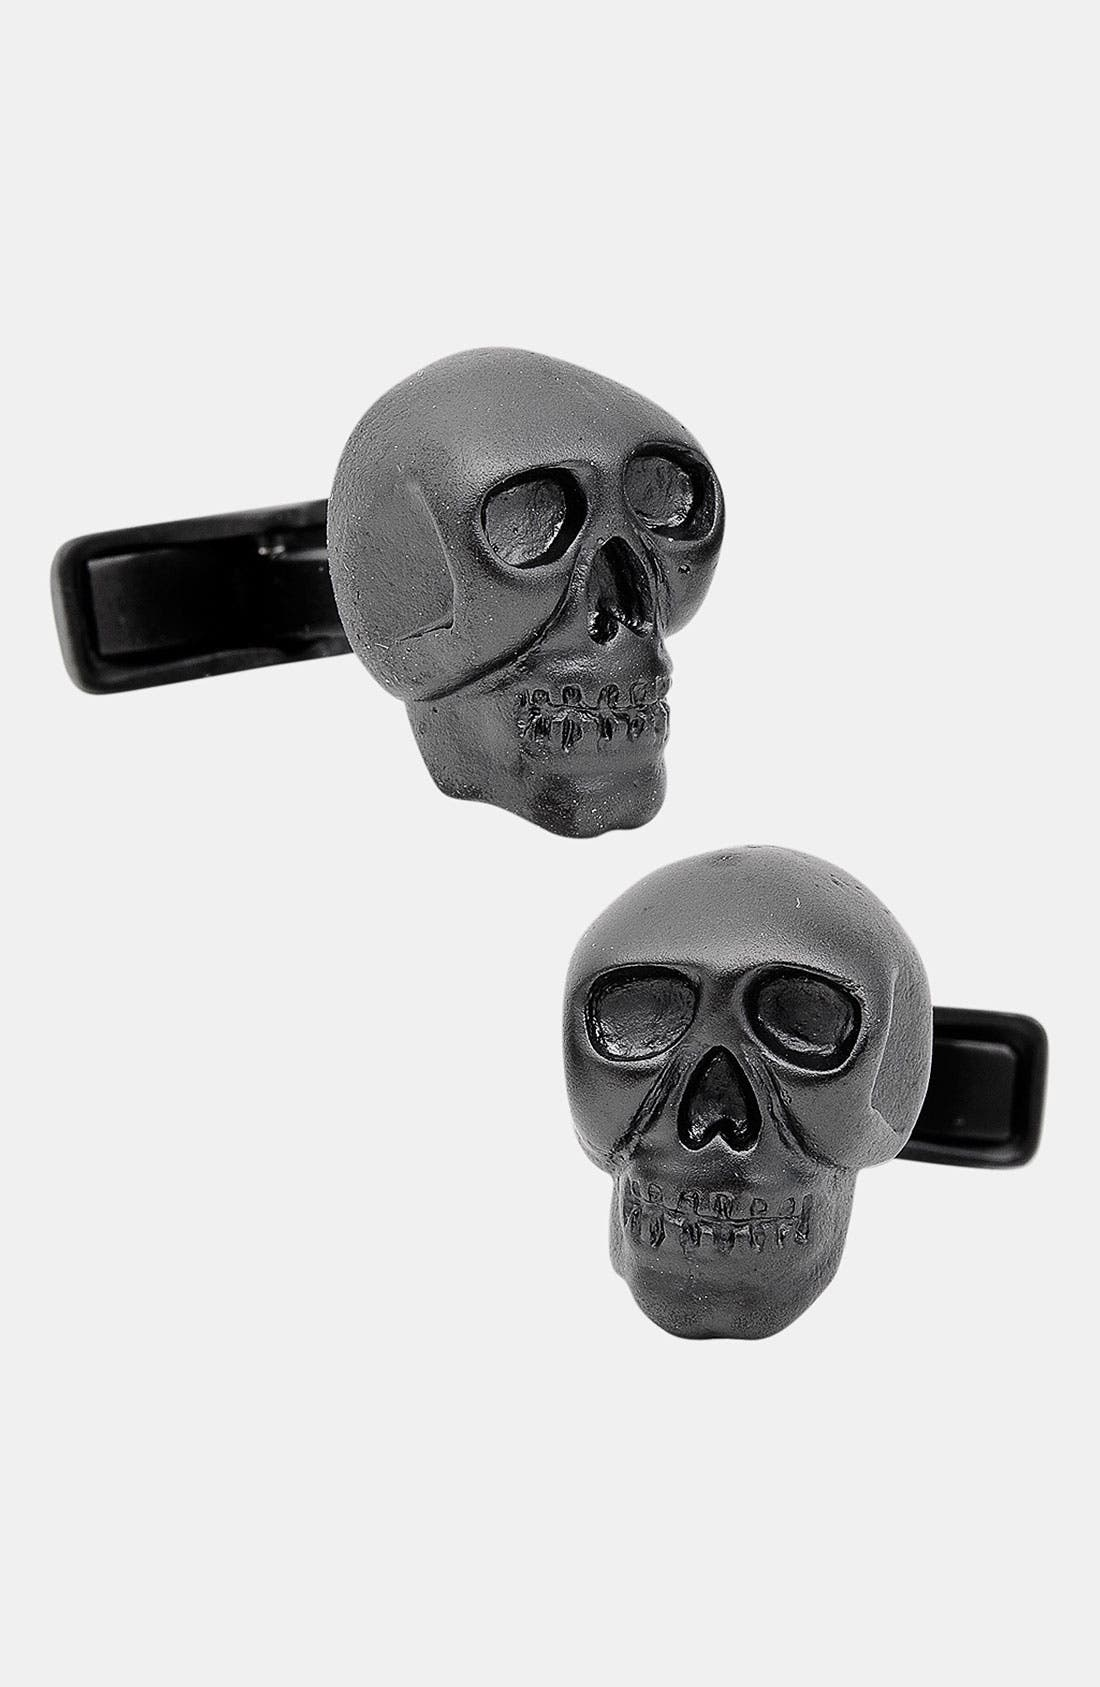 Main Image - Ox and Bull Trading Co. 'Iron Skull' Cuff Links